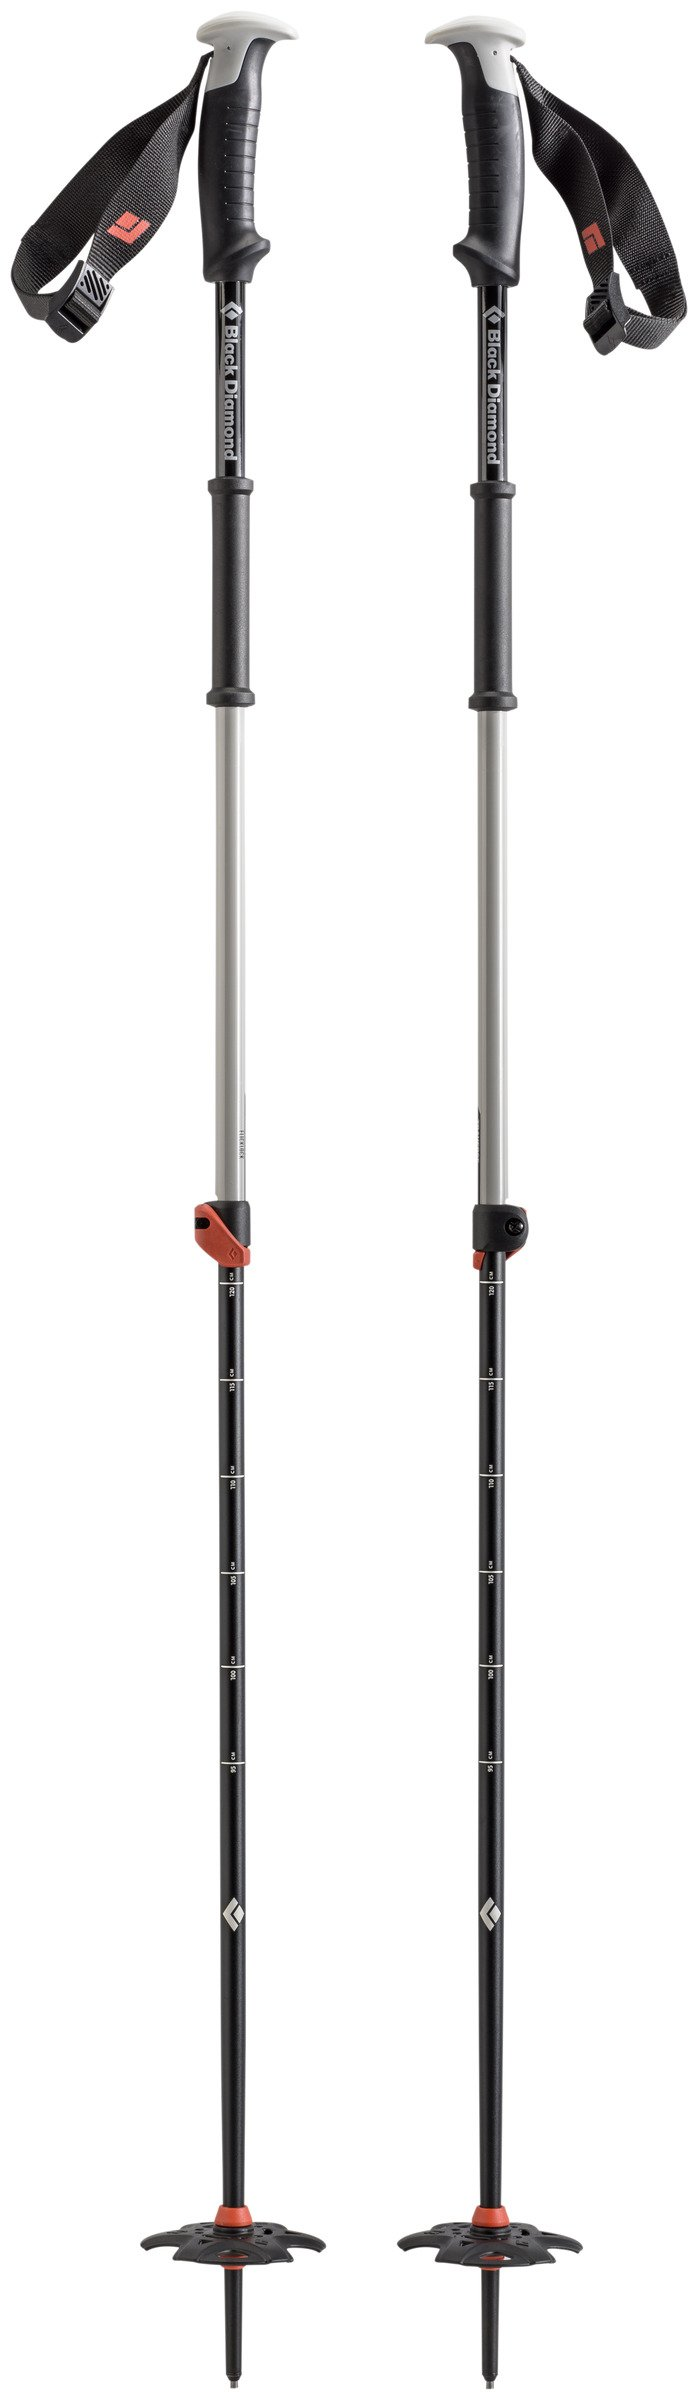 Black Diamond Traverse Pole